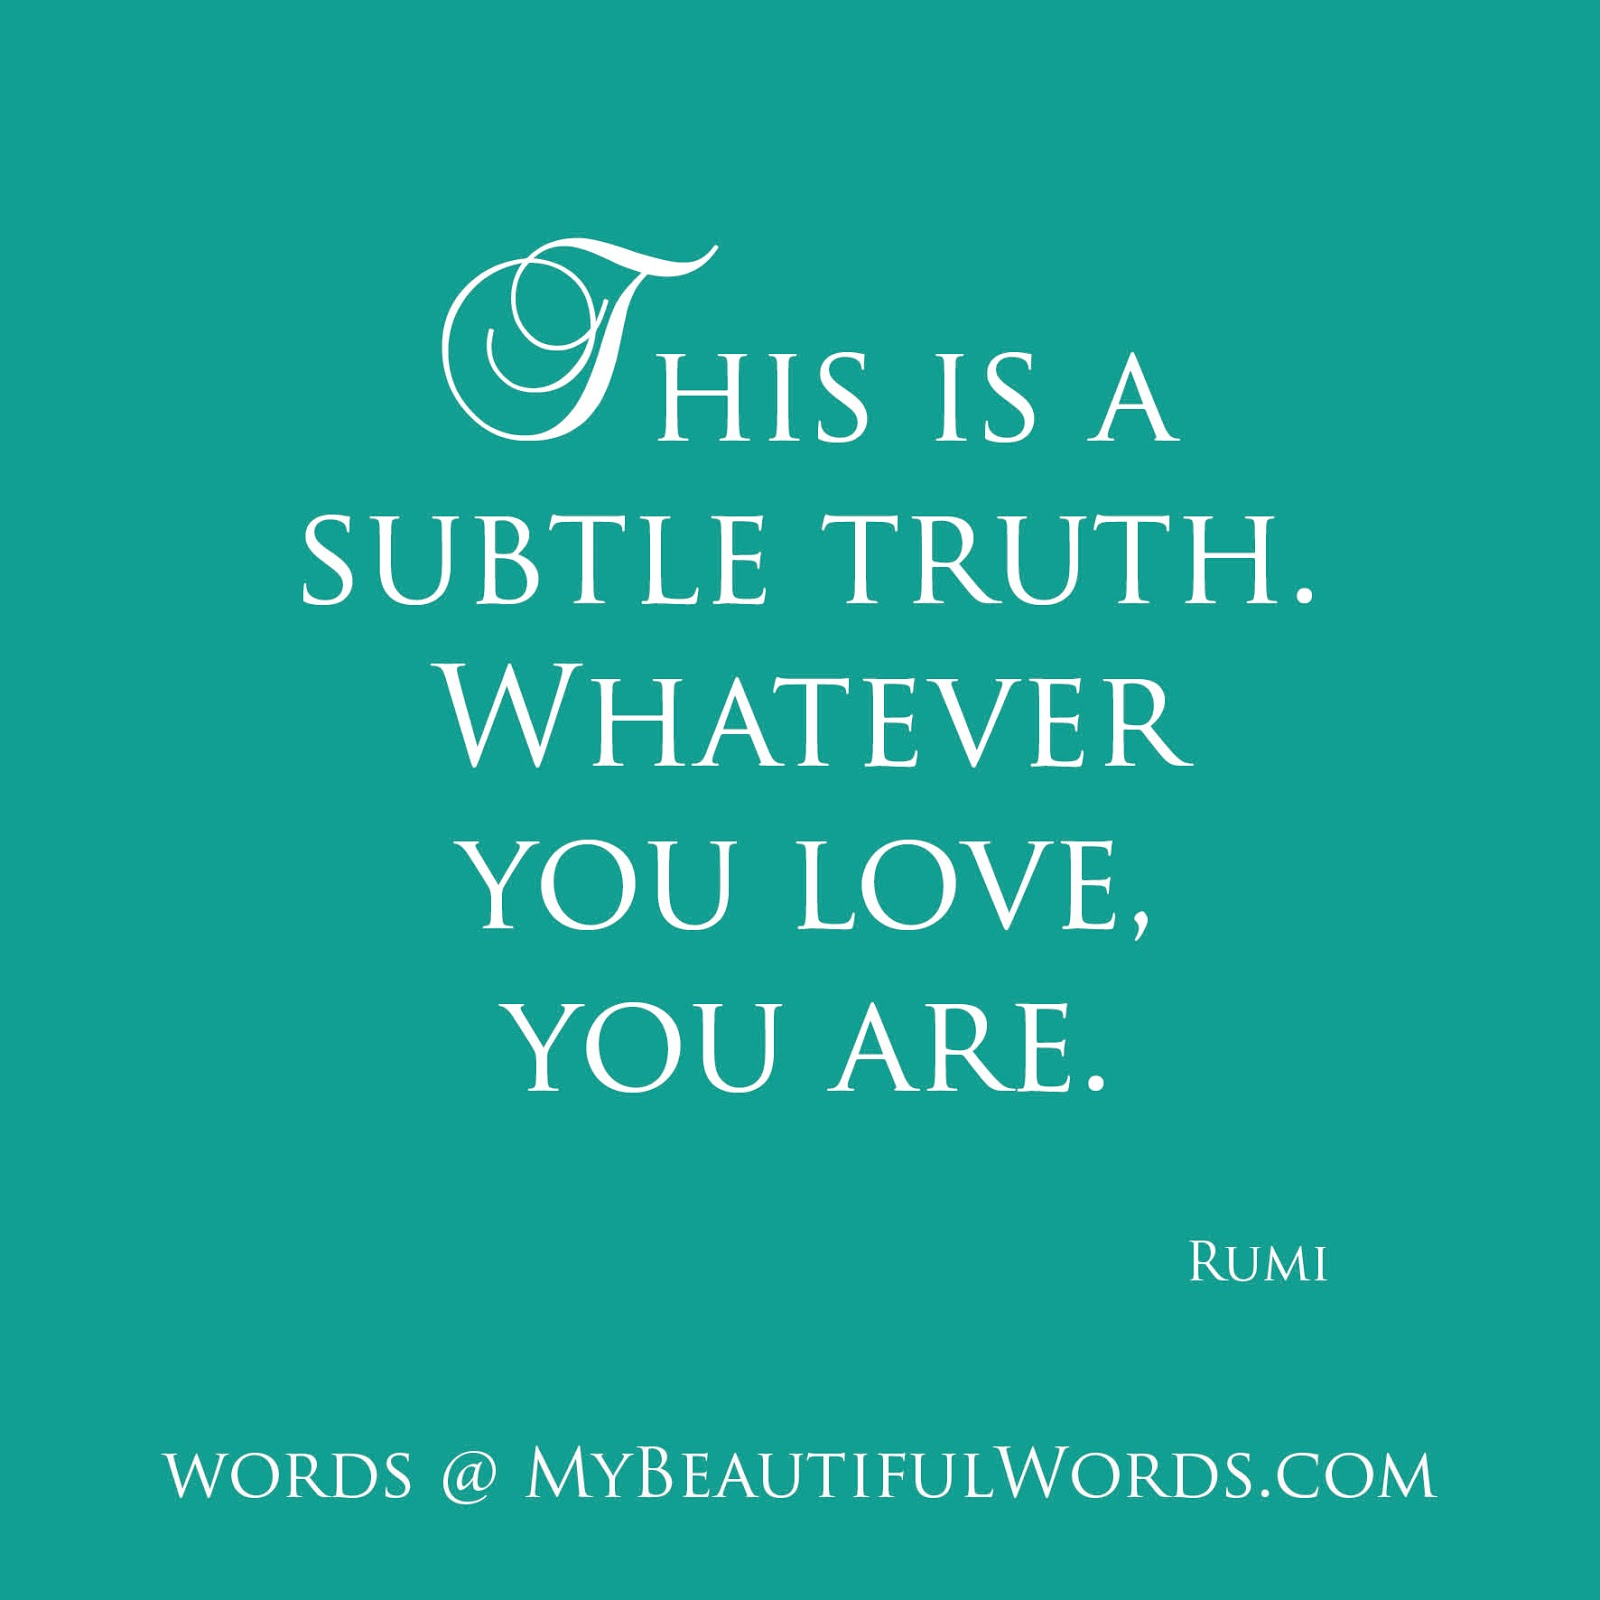 In Love Quotes: Rumi Quotes About Love. QuotesGram